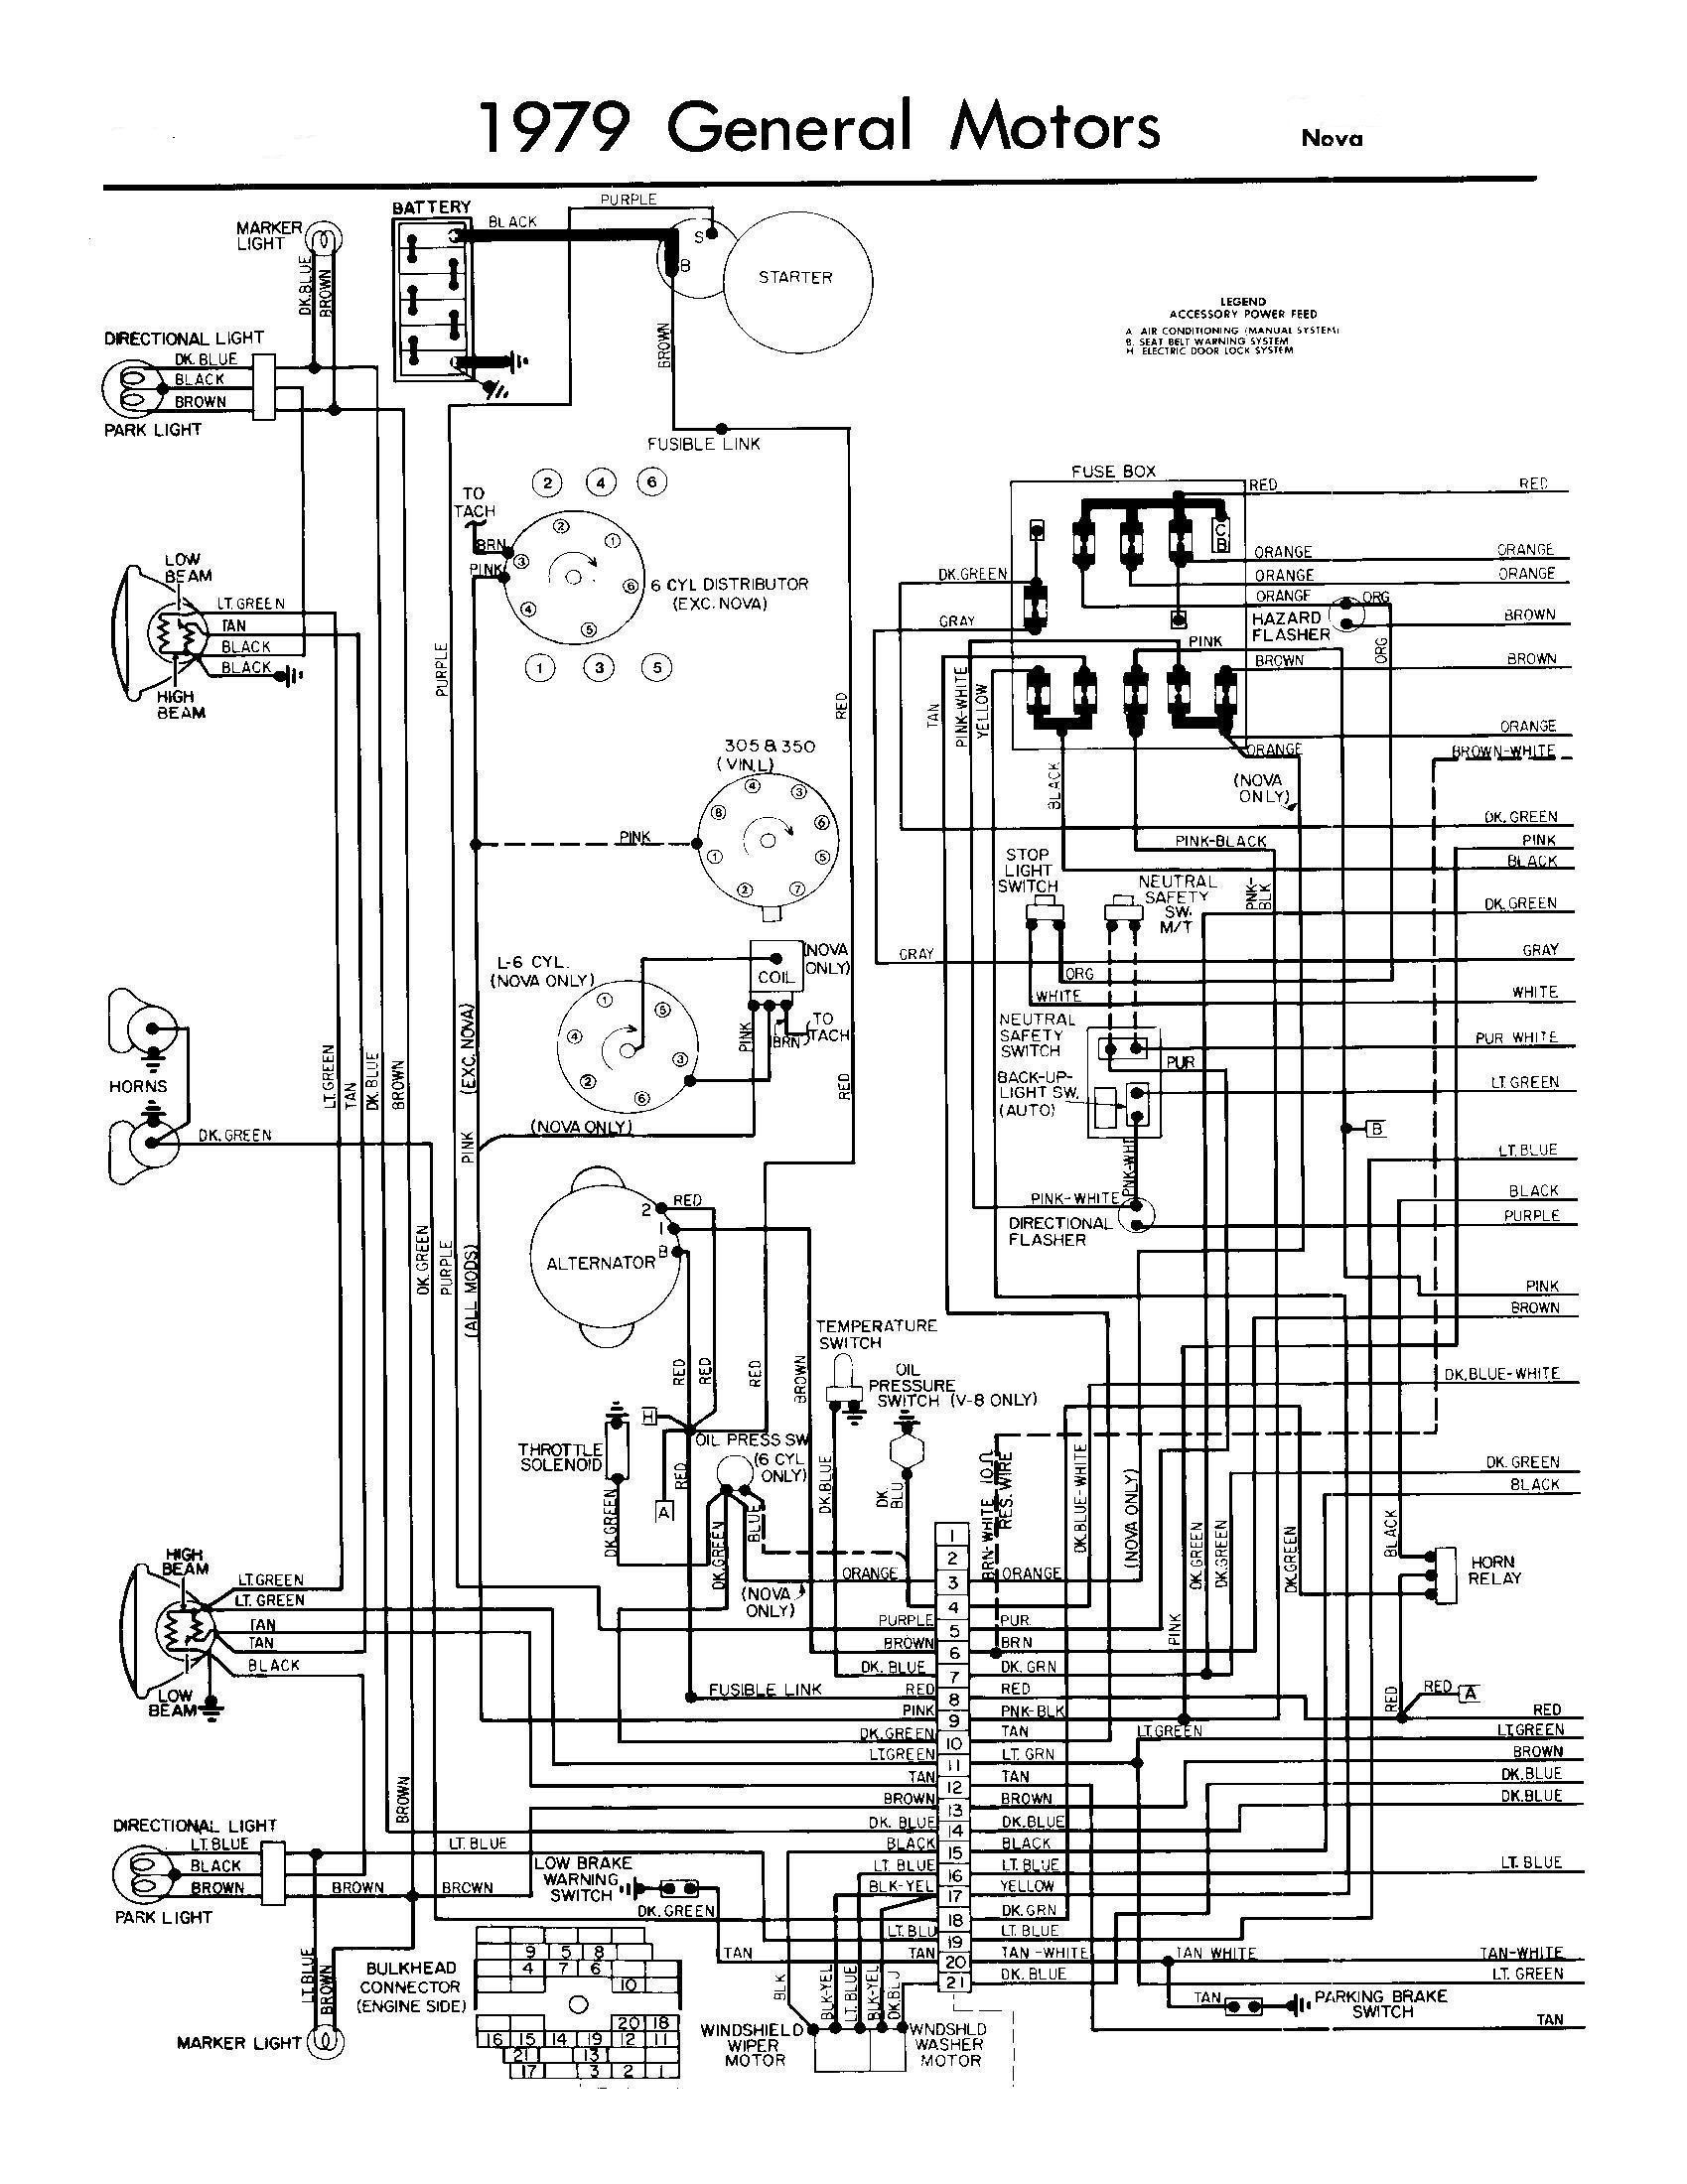 82 chevy c10 fuse box wiring diagramsGmc Sierra Fuse Box Diagram Wiring Harness Wiring Diagram #13